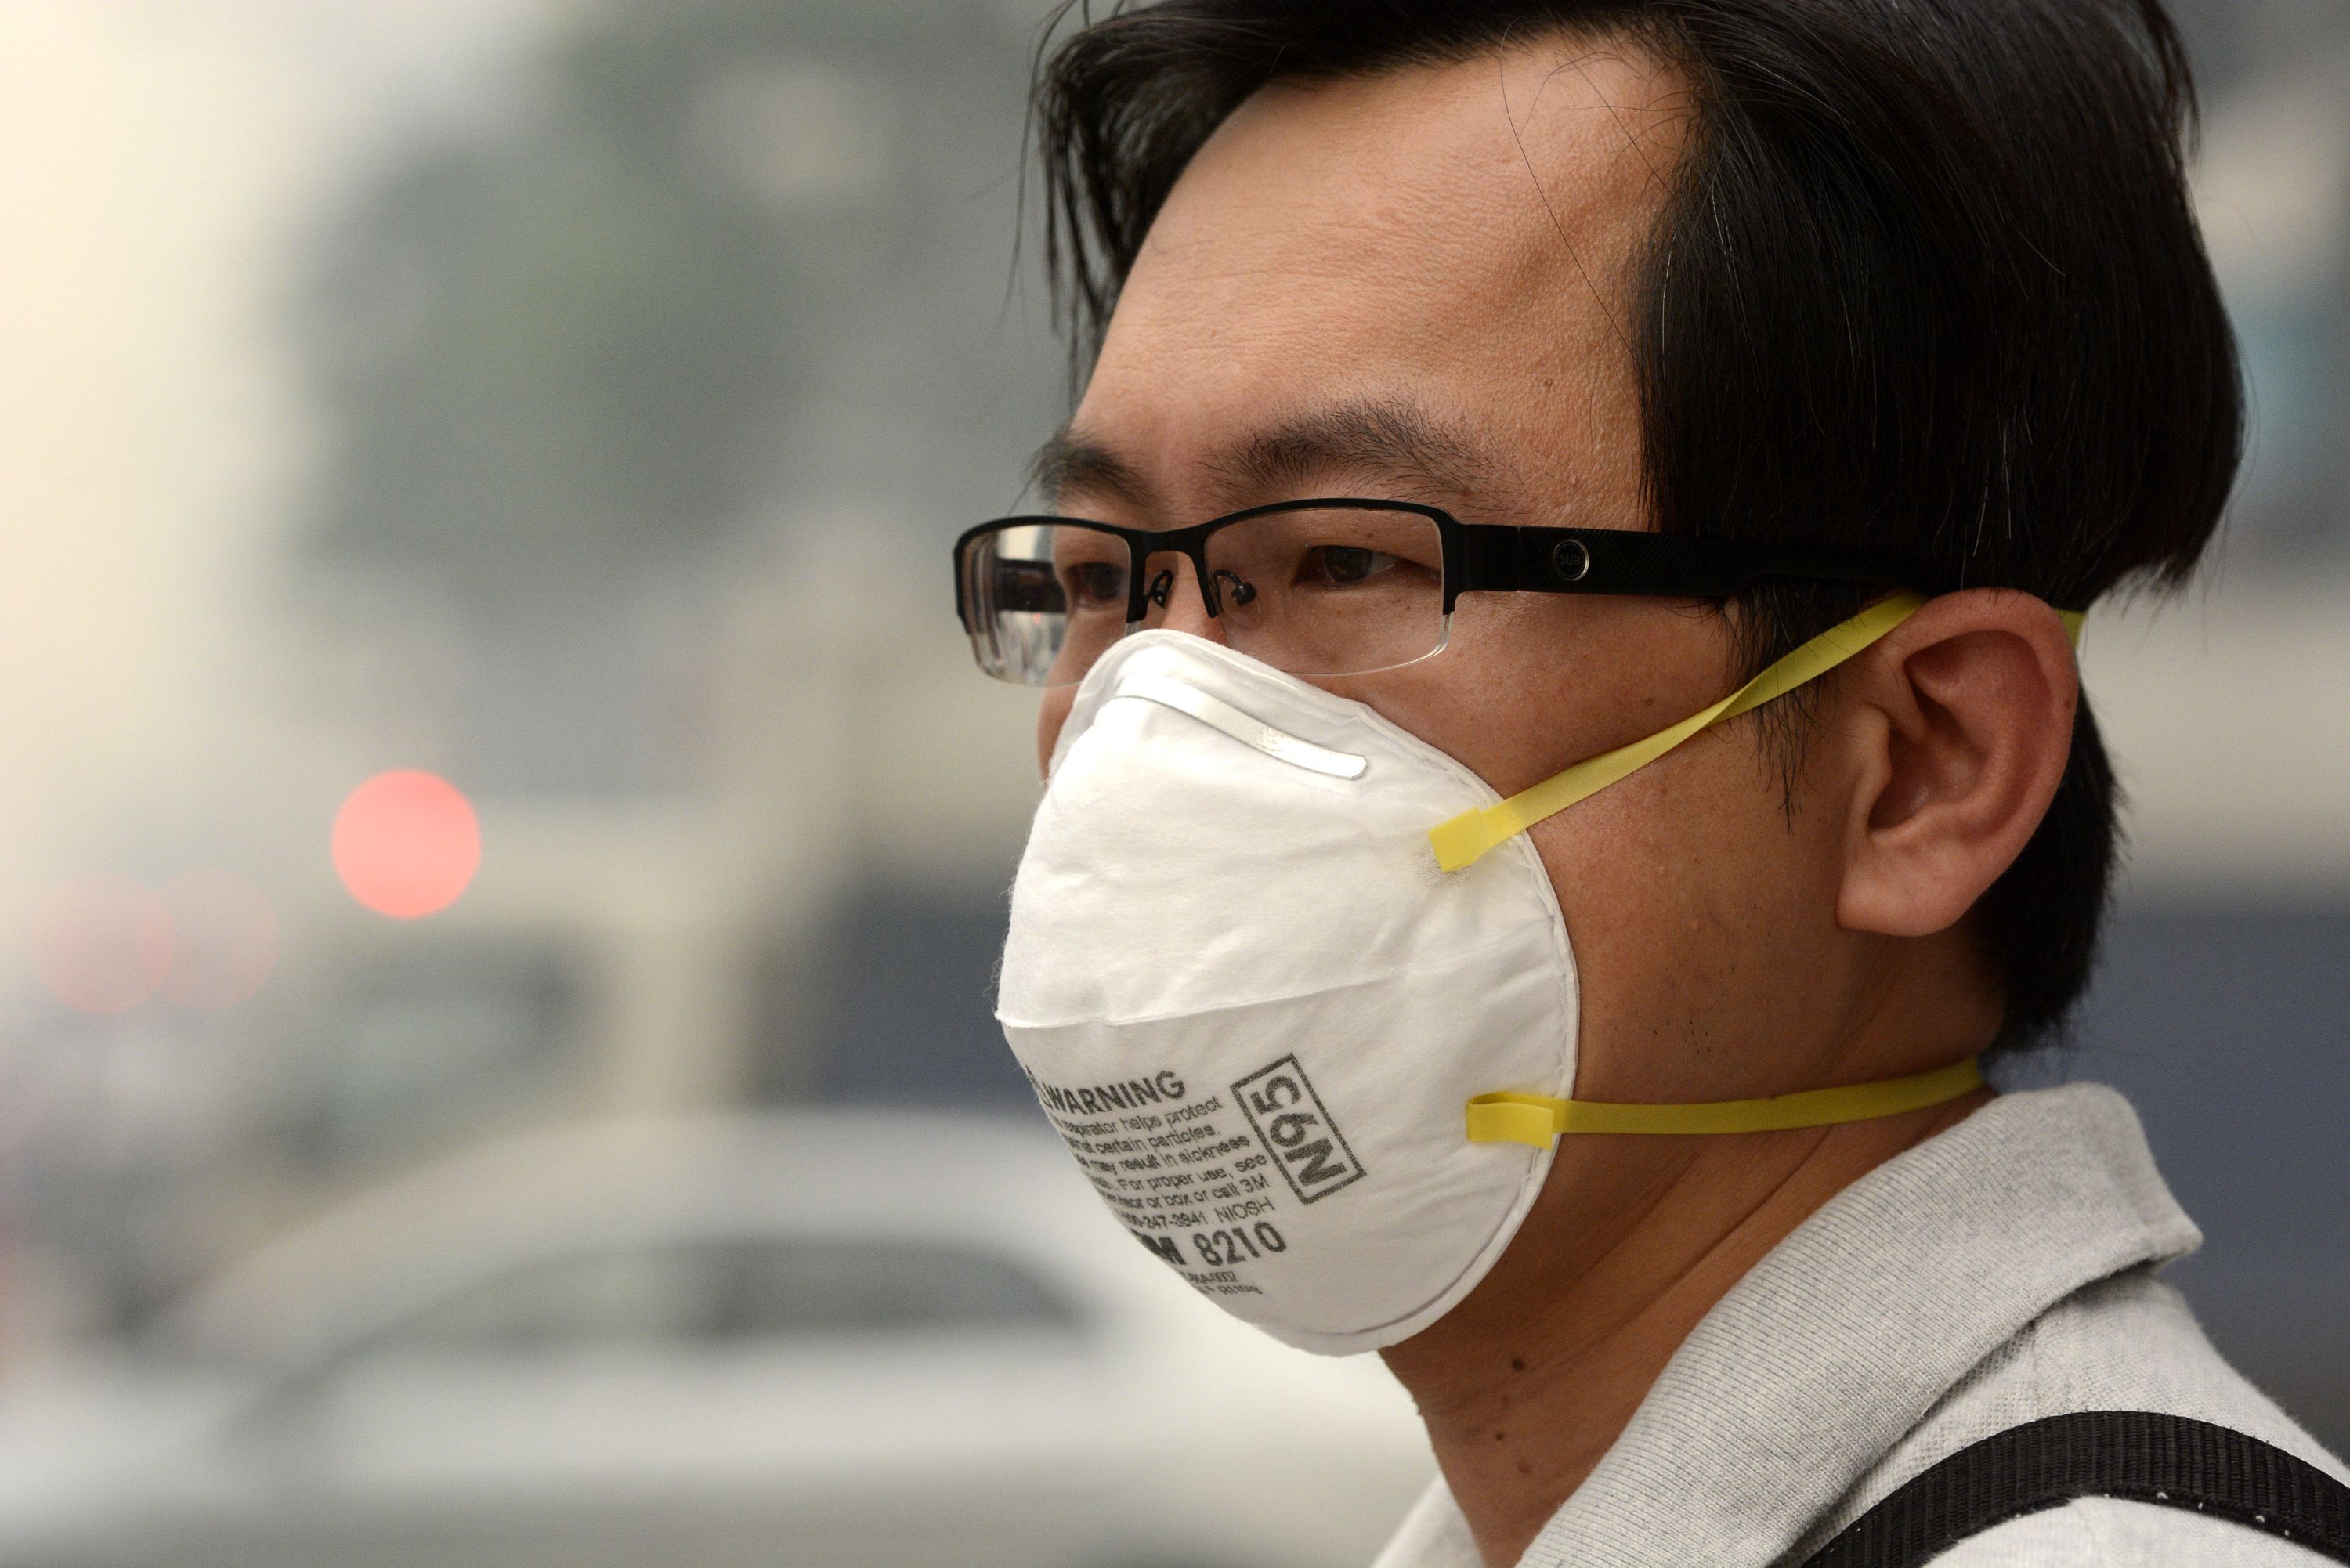 Sold-Out Coronavirus N95 Face Masks Offer Lesson in Price Gouging ...